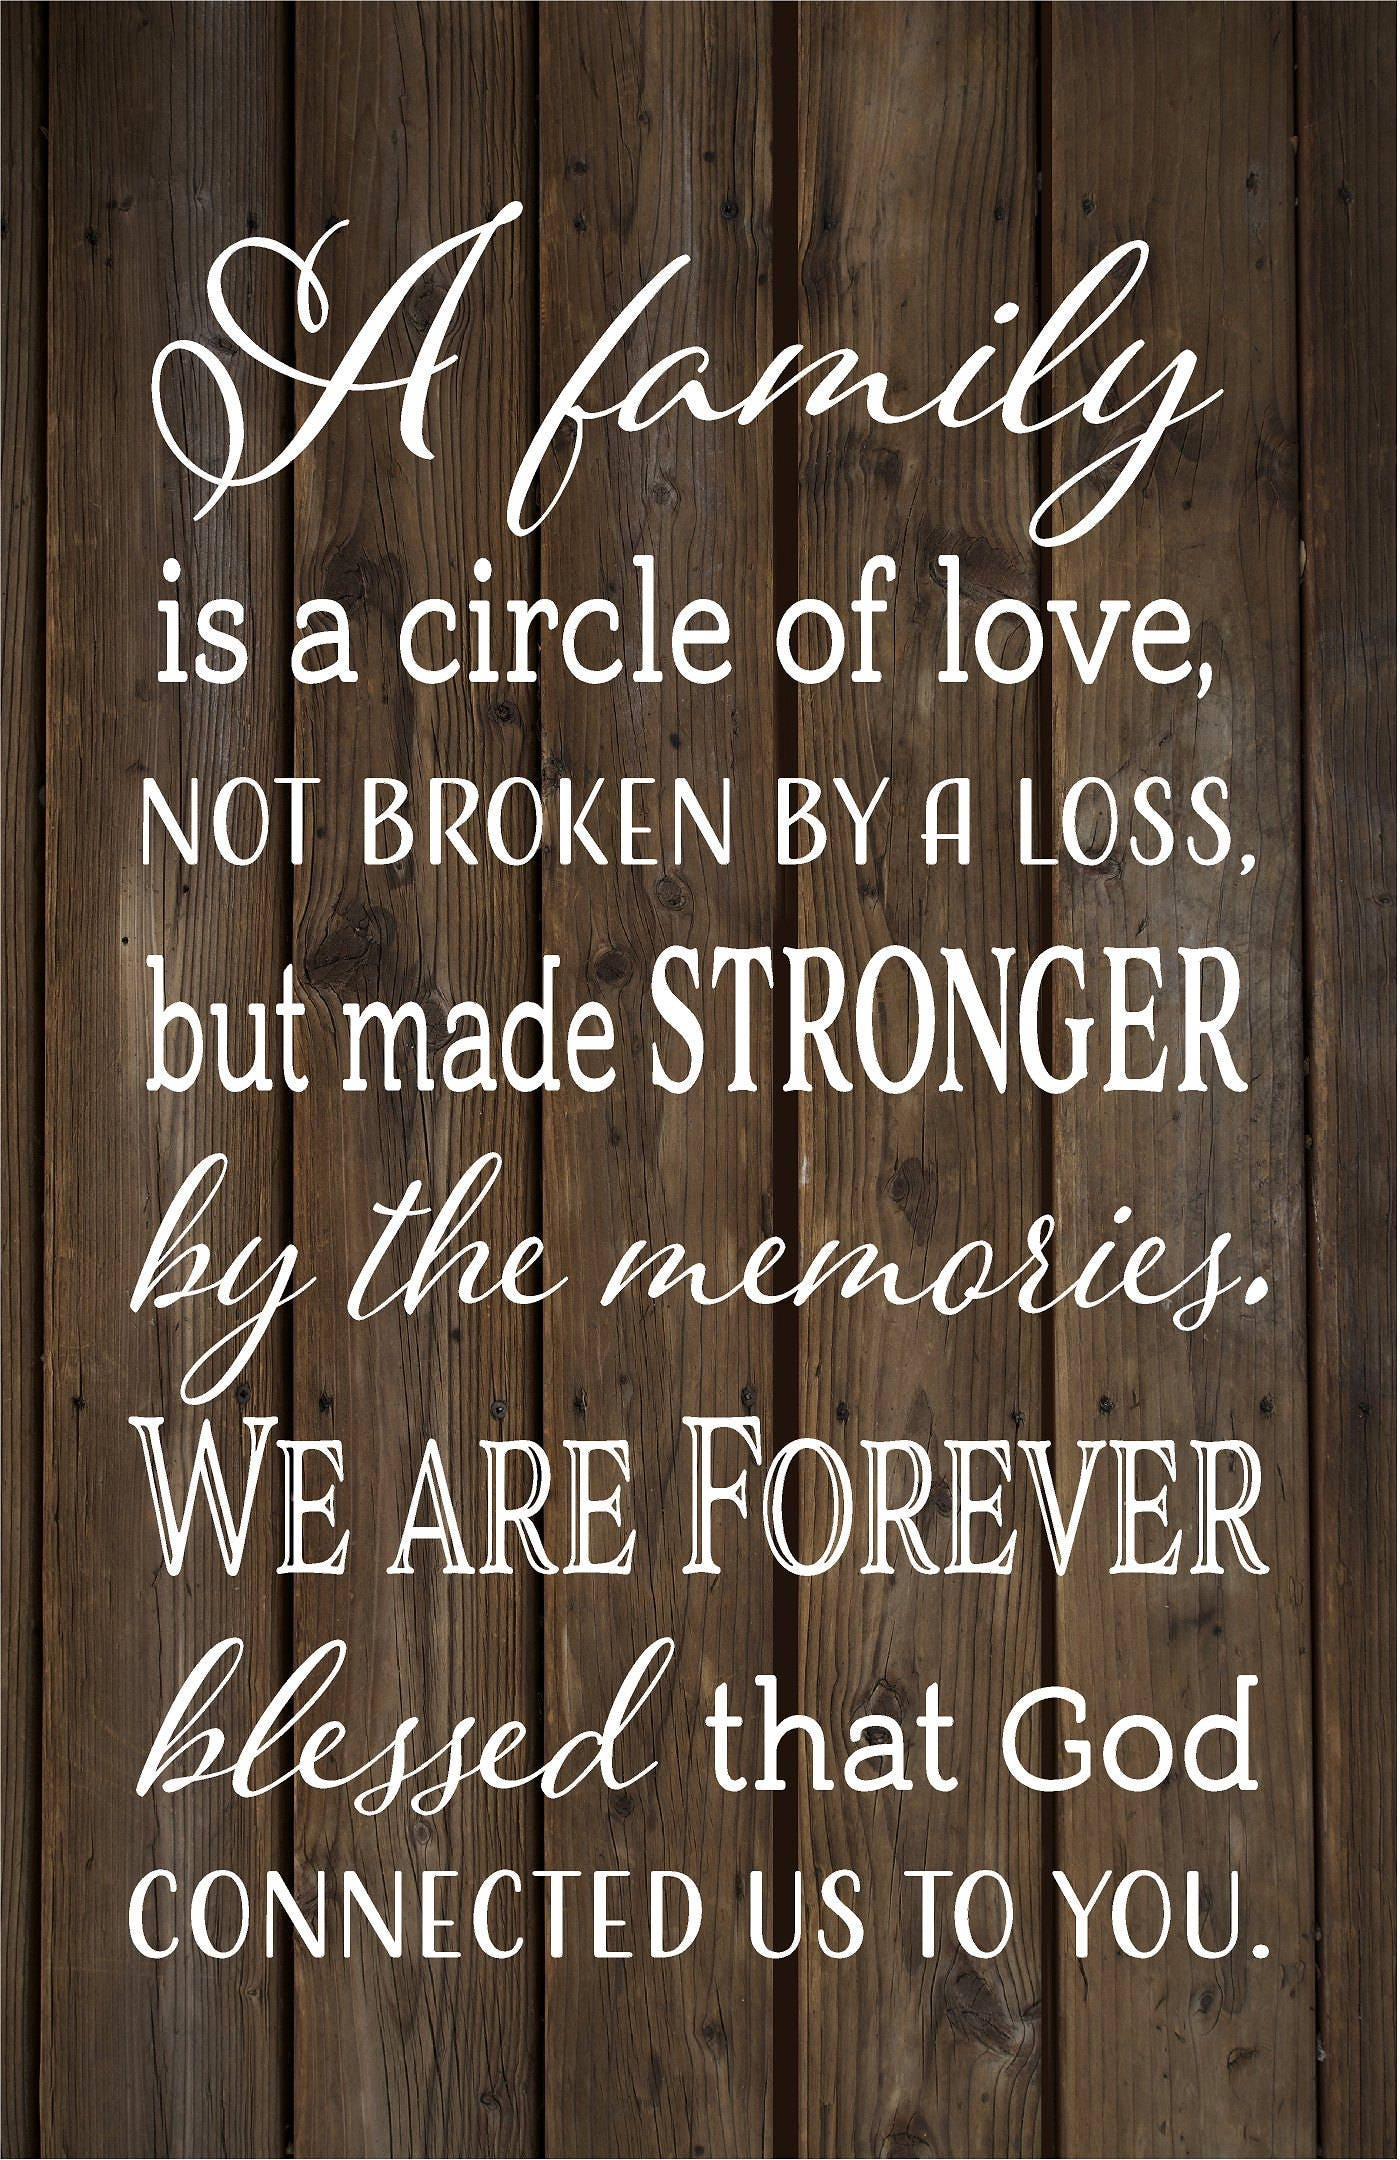 sympathy gift family forever blessed memories wood sign canvas wall